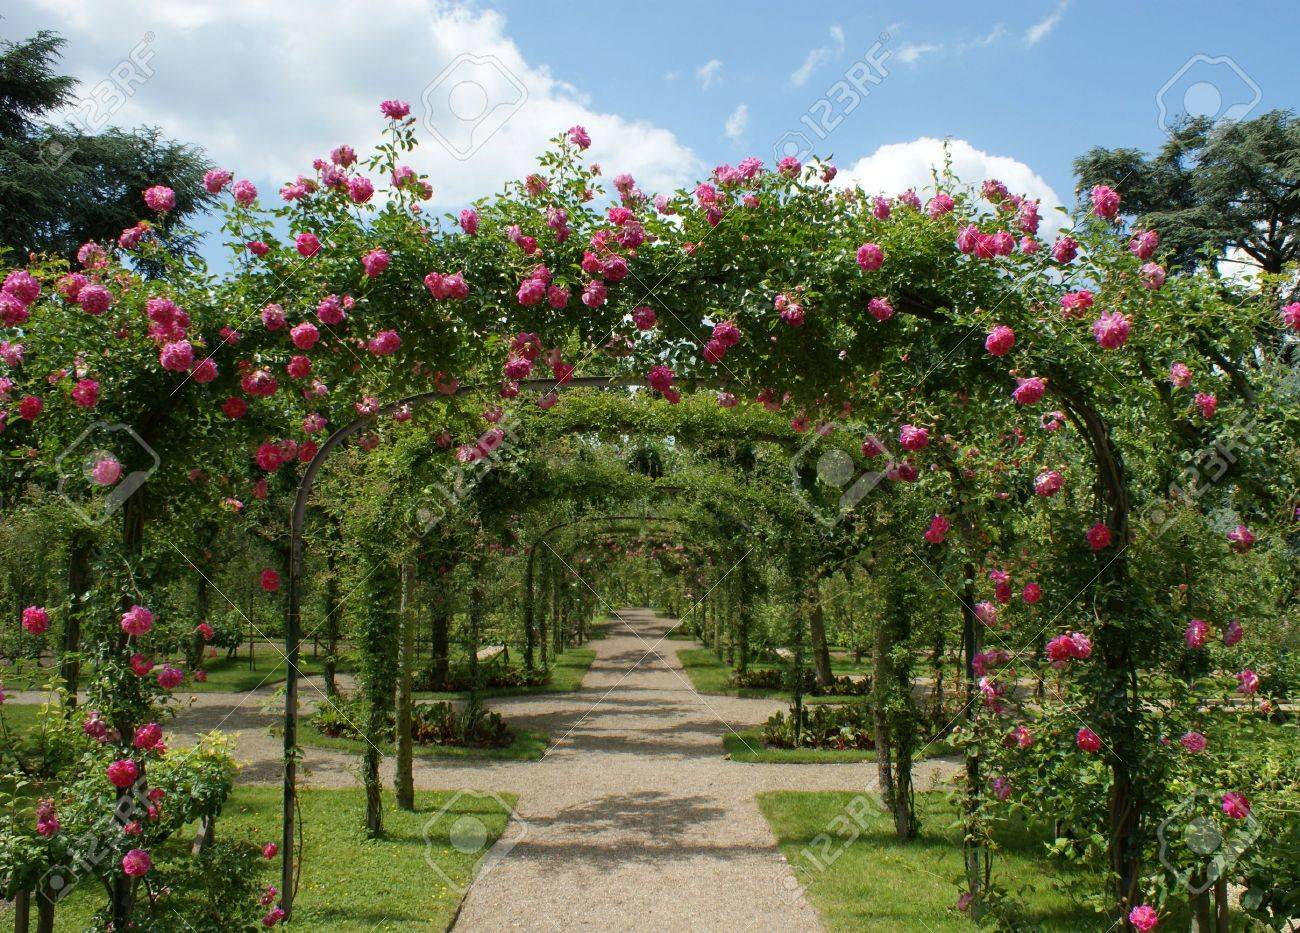 Roses Pergola In A French Garden Stock Photo Picture And Royalty